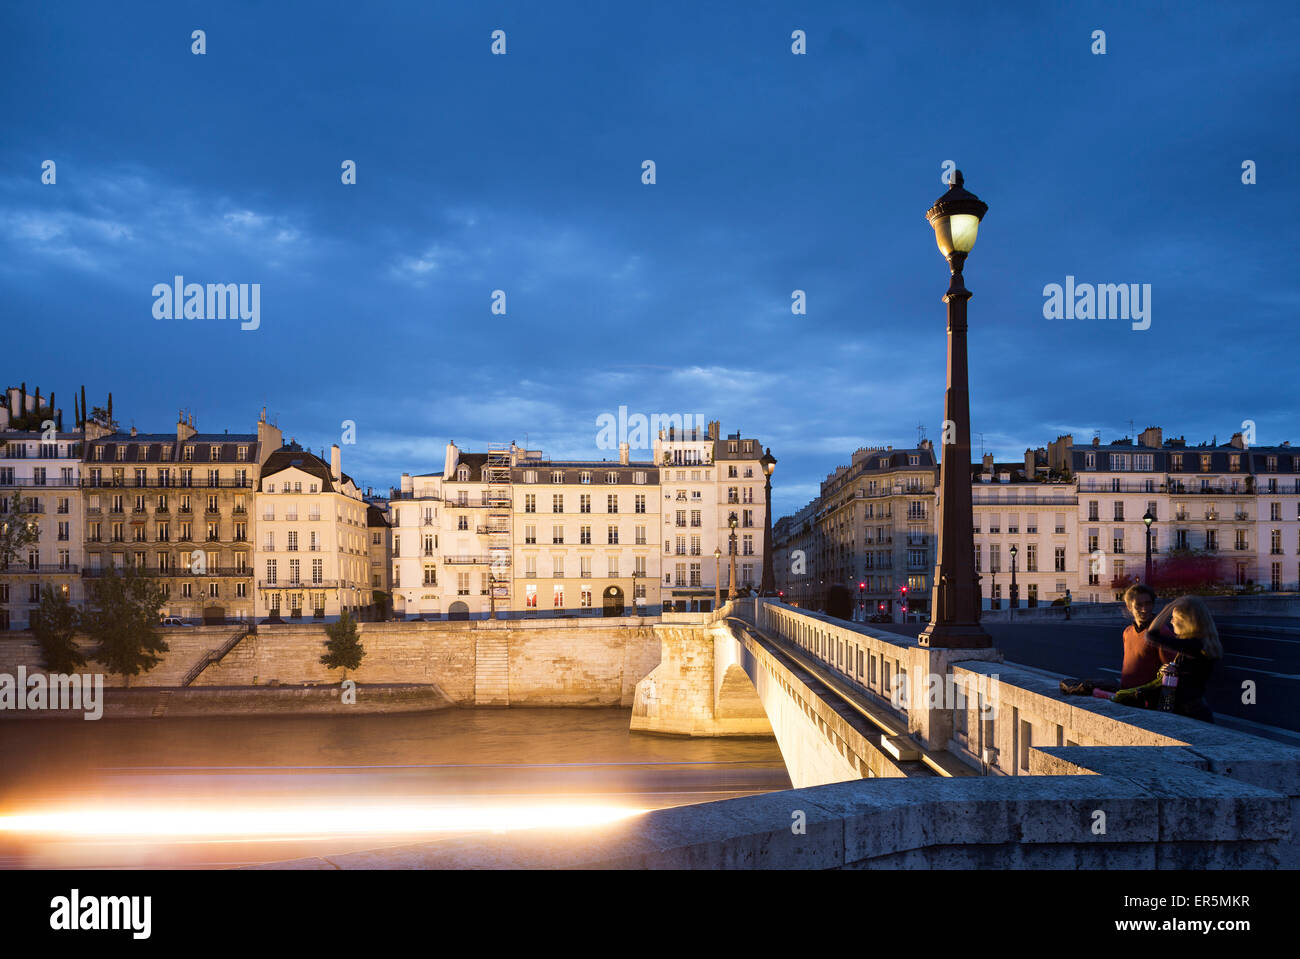 View from Pont de la Tournelle to Quai d'Orleans le and Quai de Bethune ri, Ile Saint-Louis, Paris, France, - Stock Image